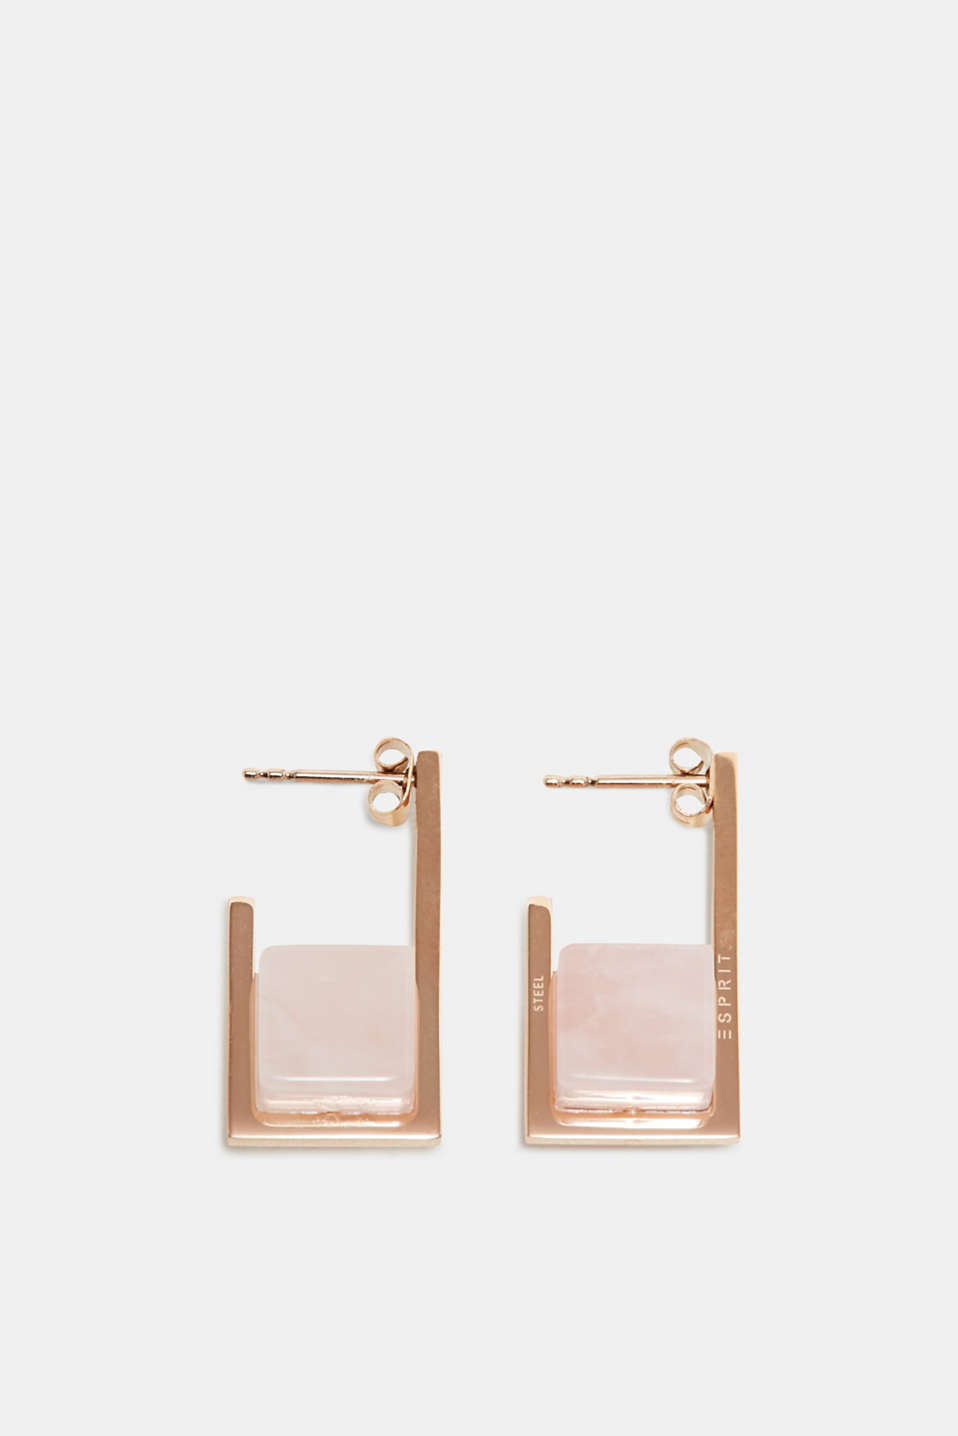 Esprit - Stainless steel stud earrings with stones in a rose quartz look